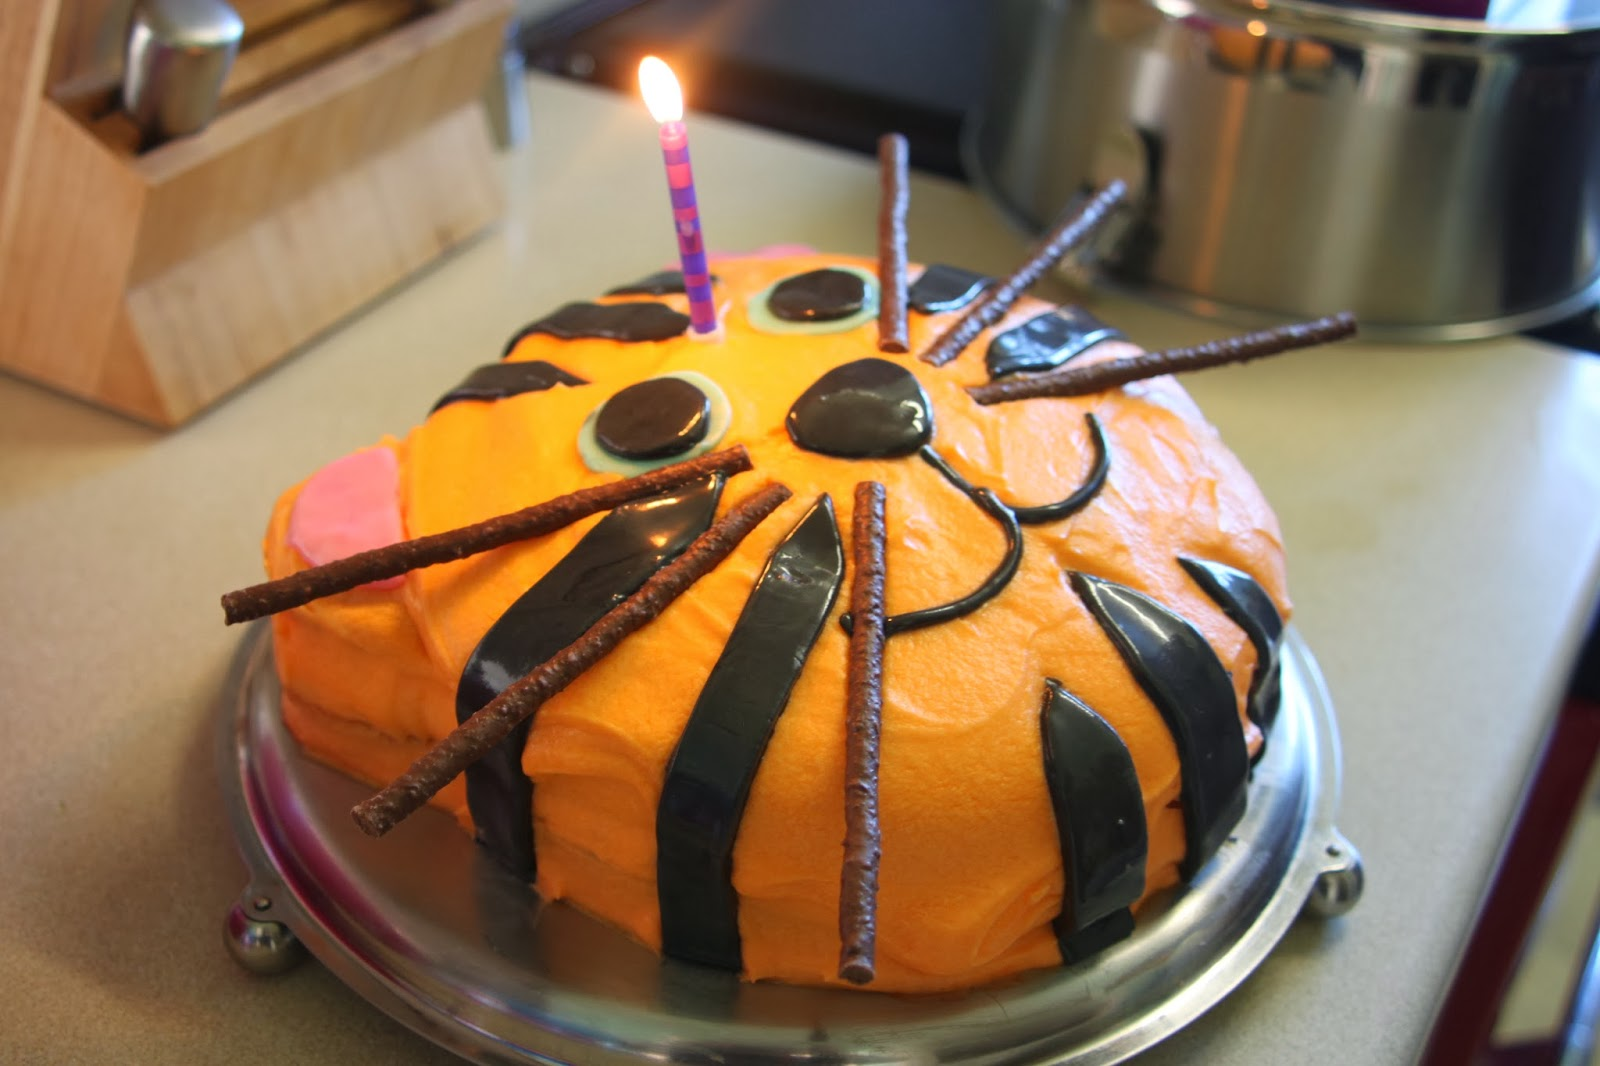 Tadpegs: A Tiger Birthday Cake for a First Birthday